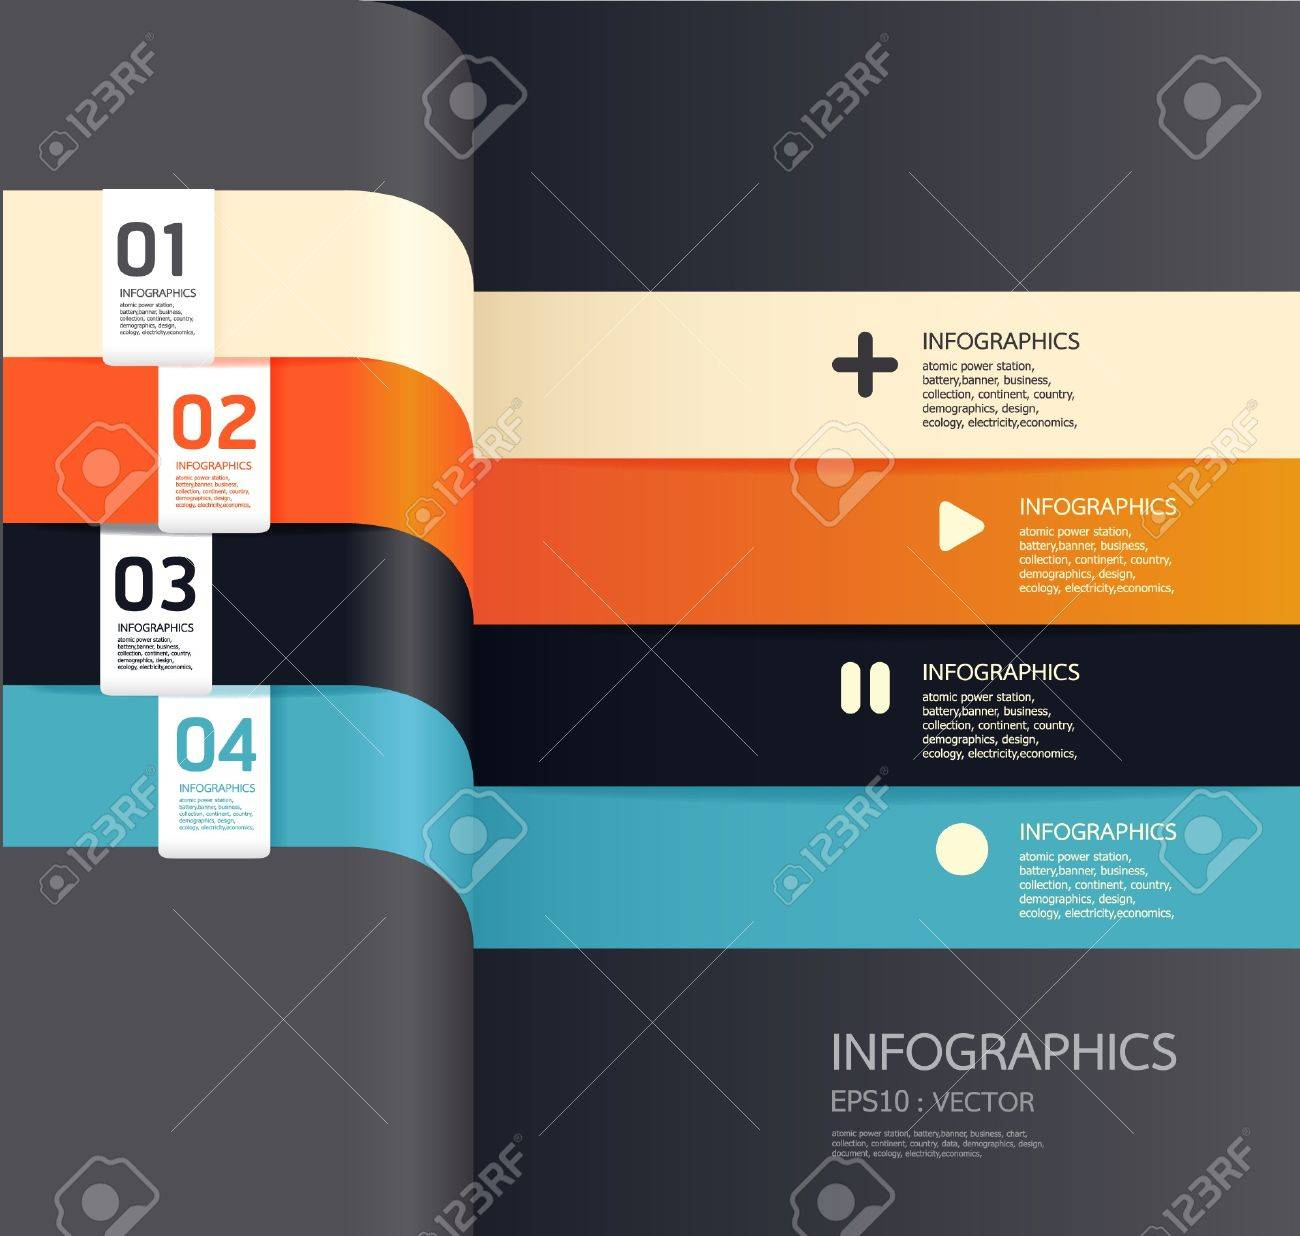 Modern   Design template    can be used for infographics   numbered banners   horizontal cutout lines   graphic or website layout vector Stock Vector - 15306751